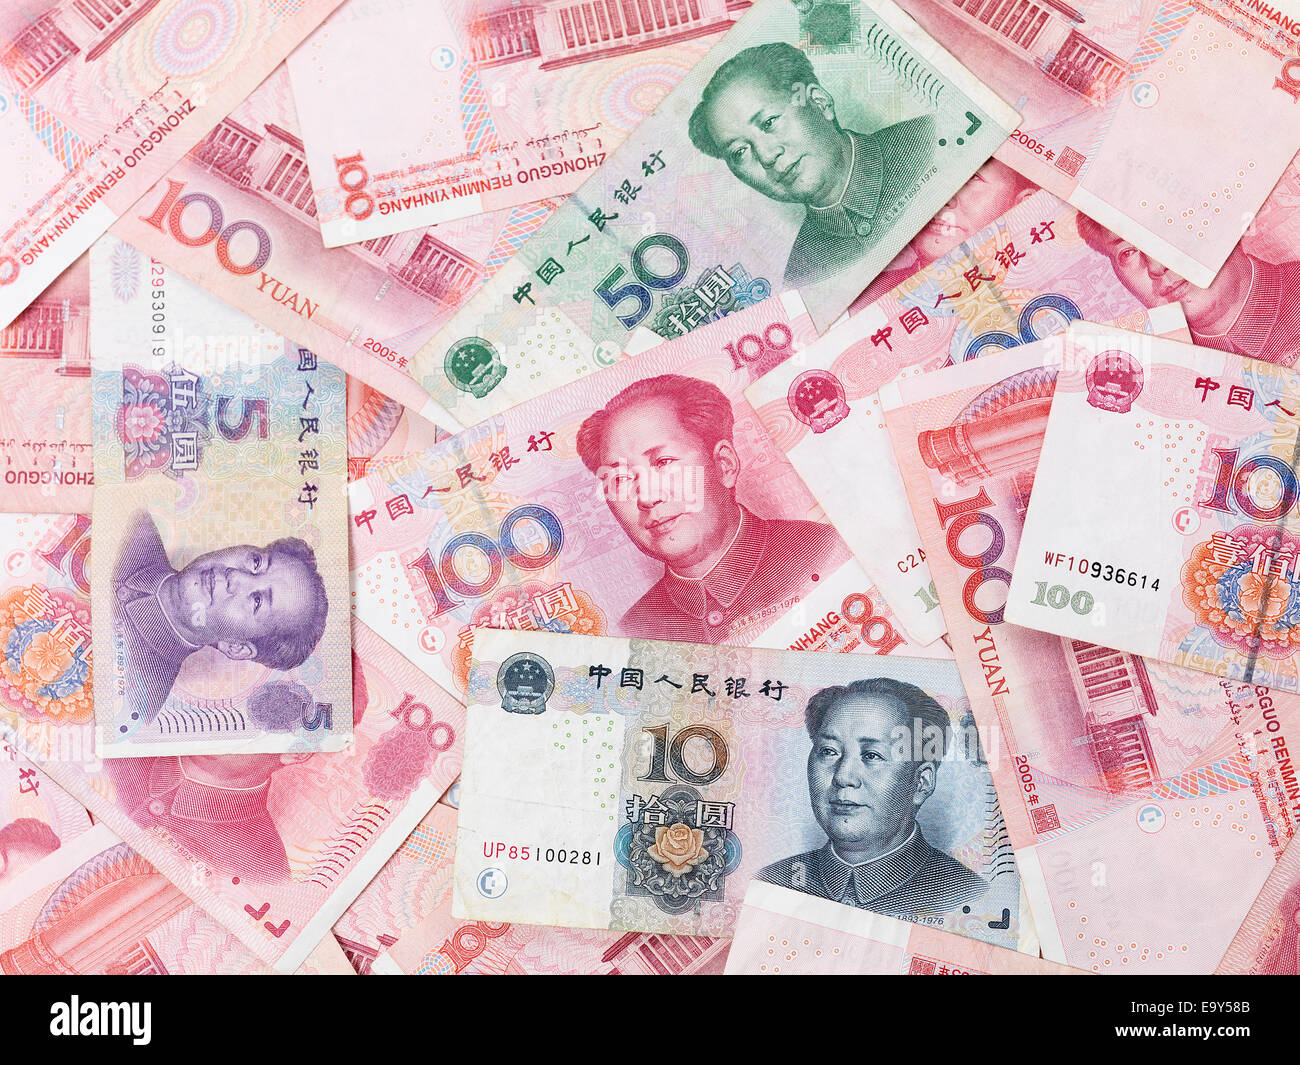 Chinese Yuan money, bills, Renminbi currency background - Stock Image